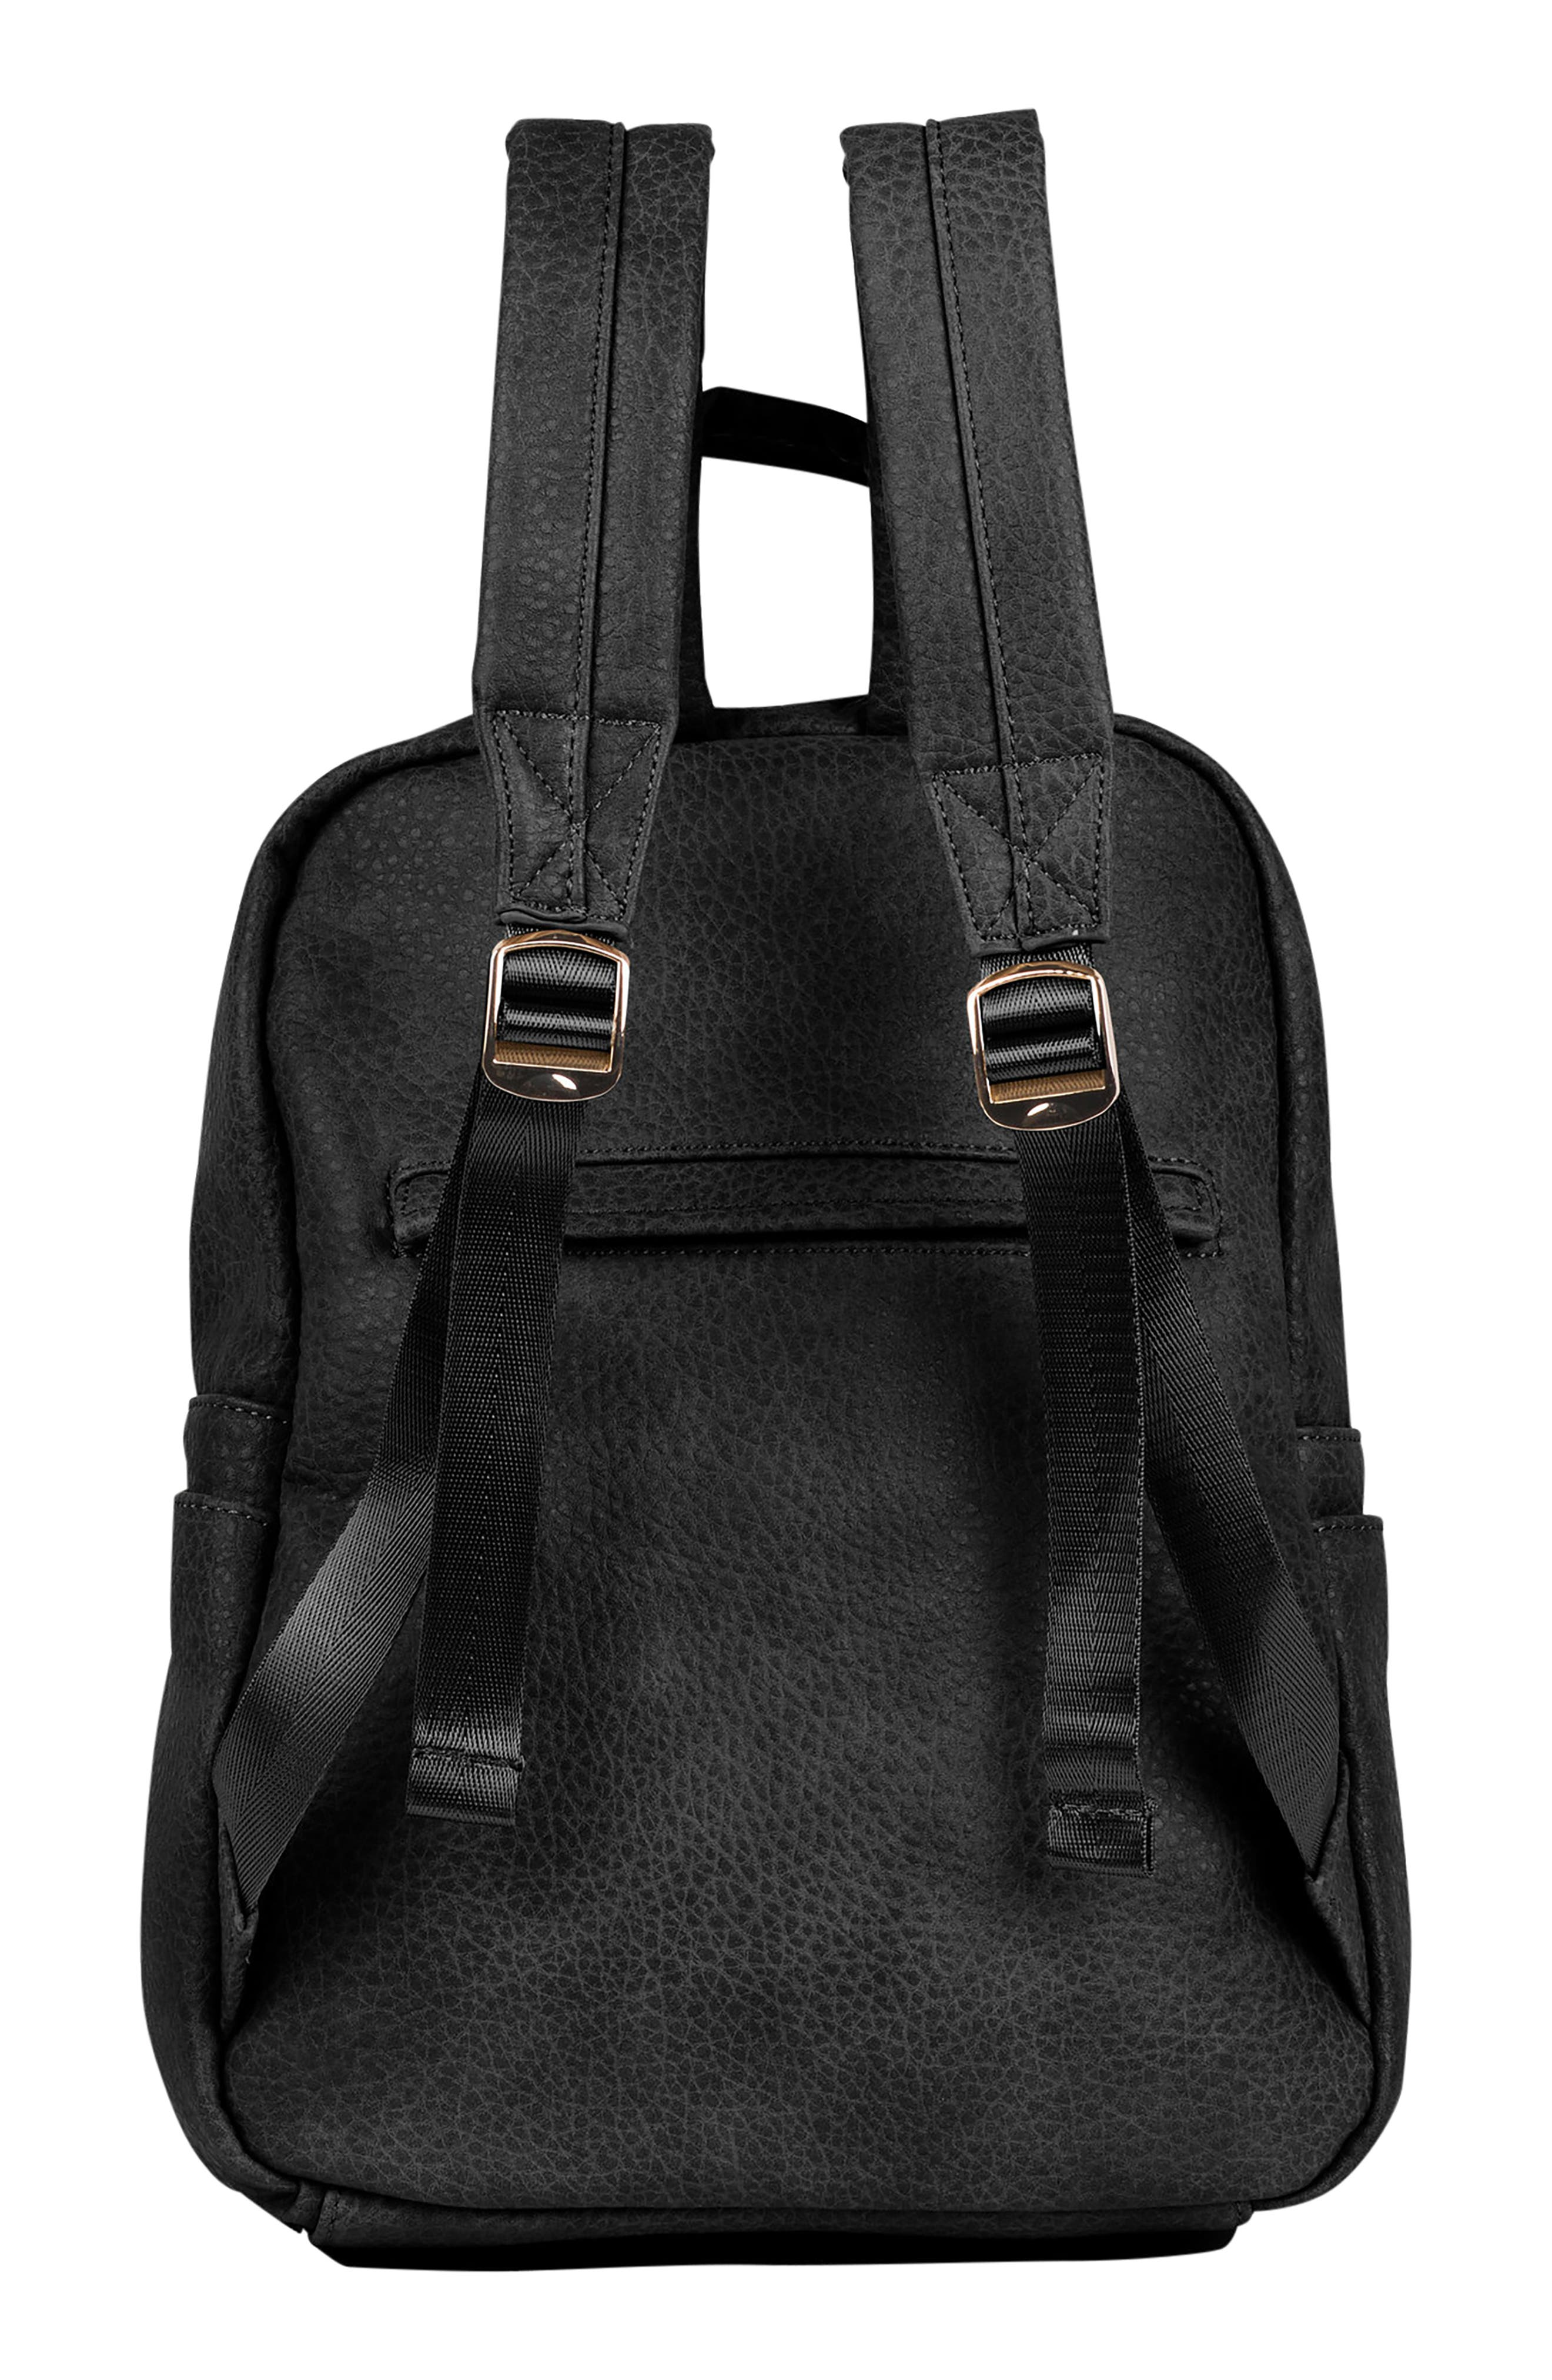 URBAN ORIGINALS,                             Bold Move Vegan Leather Laptop Backpack,                             Alternate thumbnail 2, color,                             BLACK